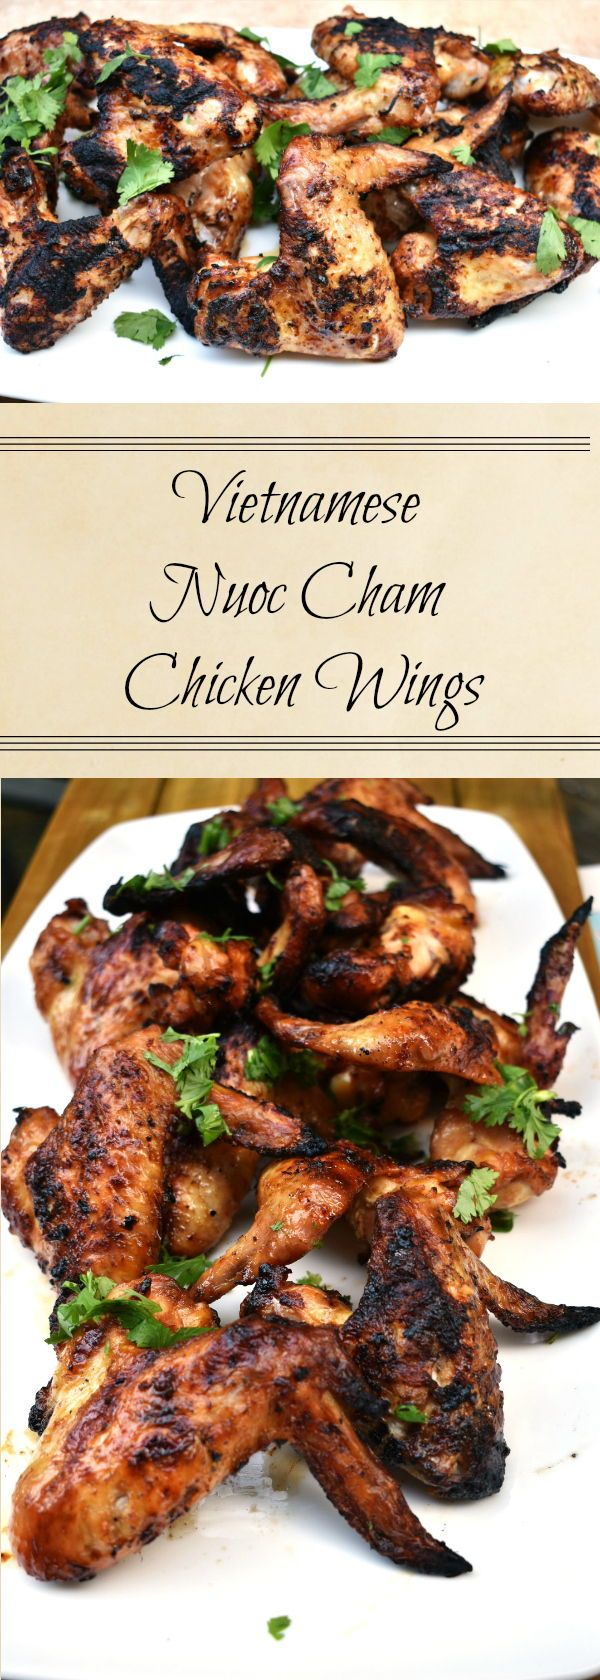 Chicken wings are a blank canvas for flavor.  When I want to try something different, chicken wings are one of the first places I turn.  Whether you're making traditional buffalo wings or experimenting with new flavors, it is almost impossible to mess up a chicken wing.  These Vietnamese Nuoc Cham Chicken Wings are a perfect example of how you can try something new and eat something familiar at the same time.